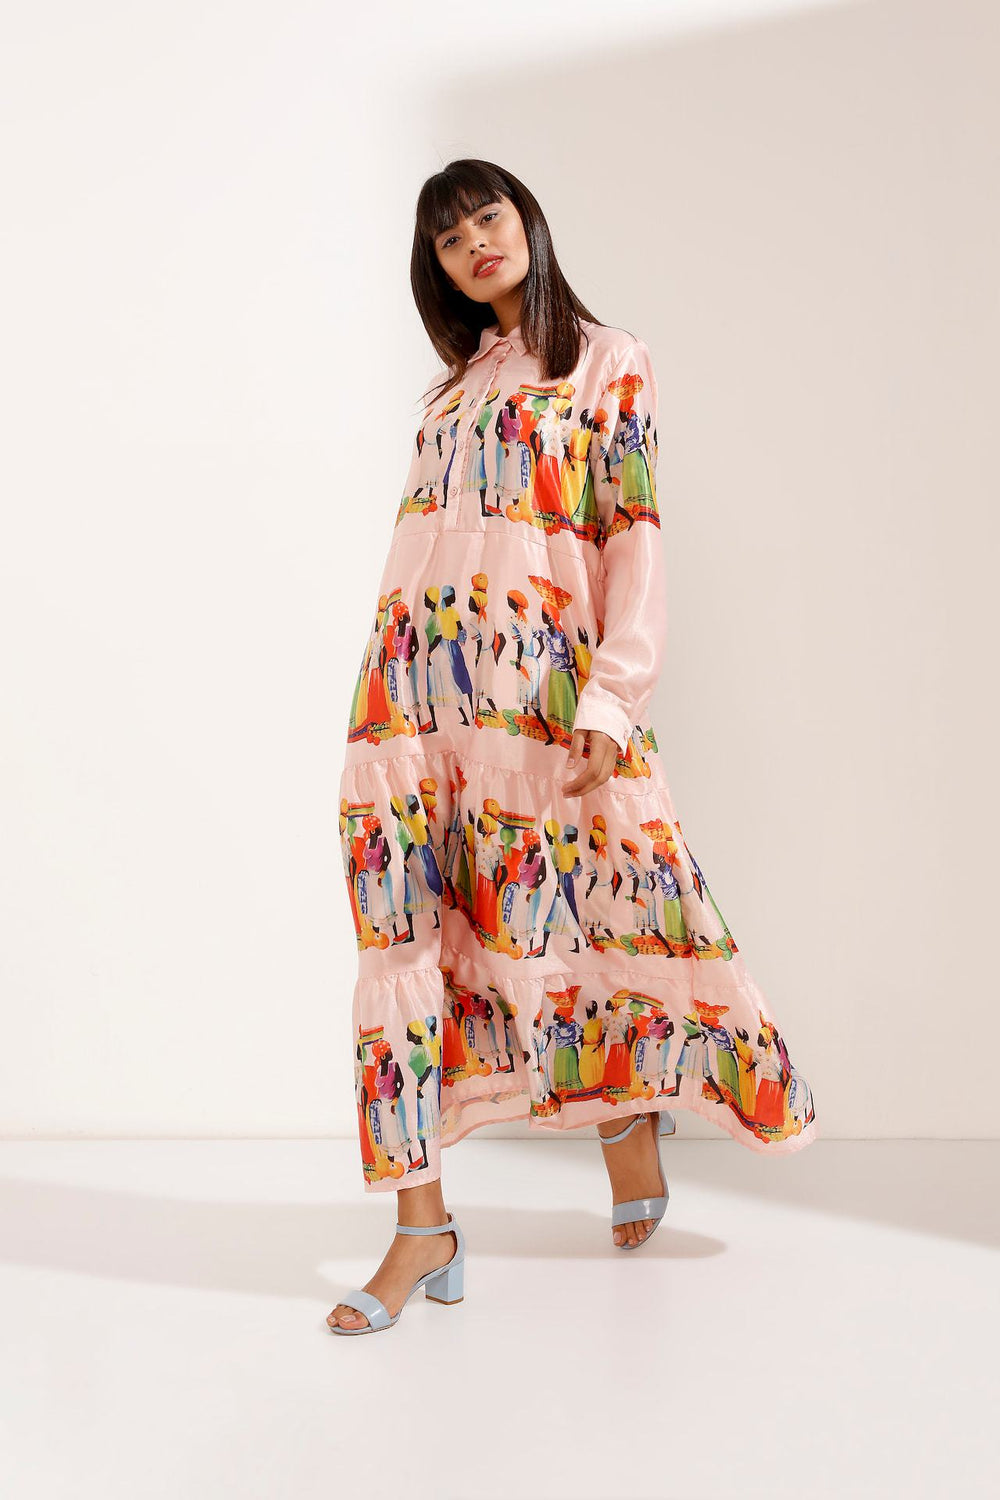 Store WF Print Buttoned Maxi Shirt Dress – Light Pink Modest Loose Fitting Dress with Long Sleeves and Prints in Polyester